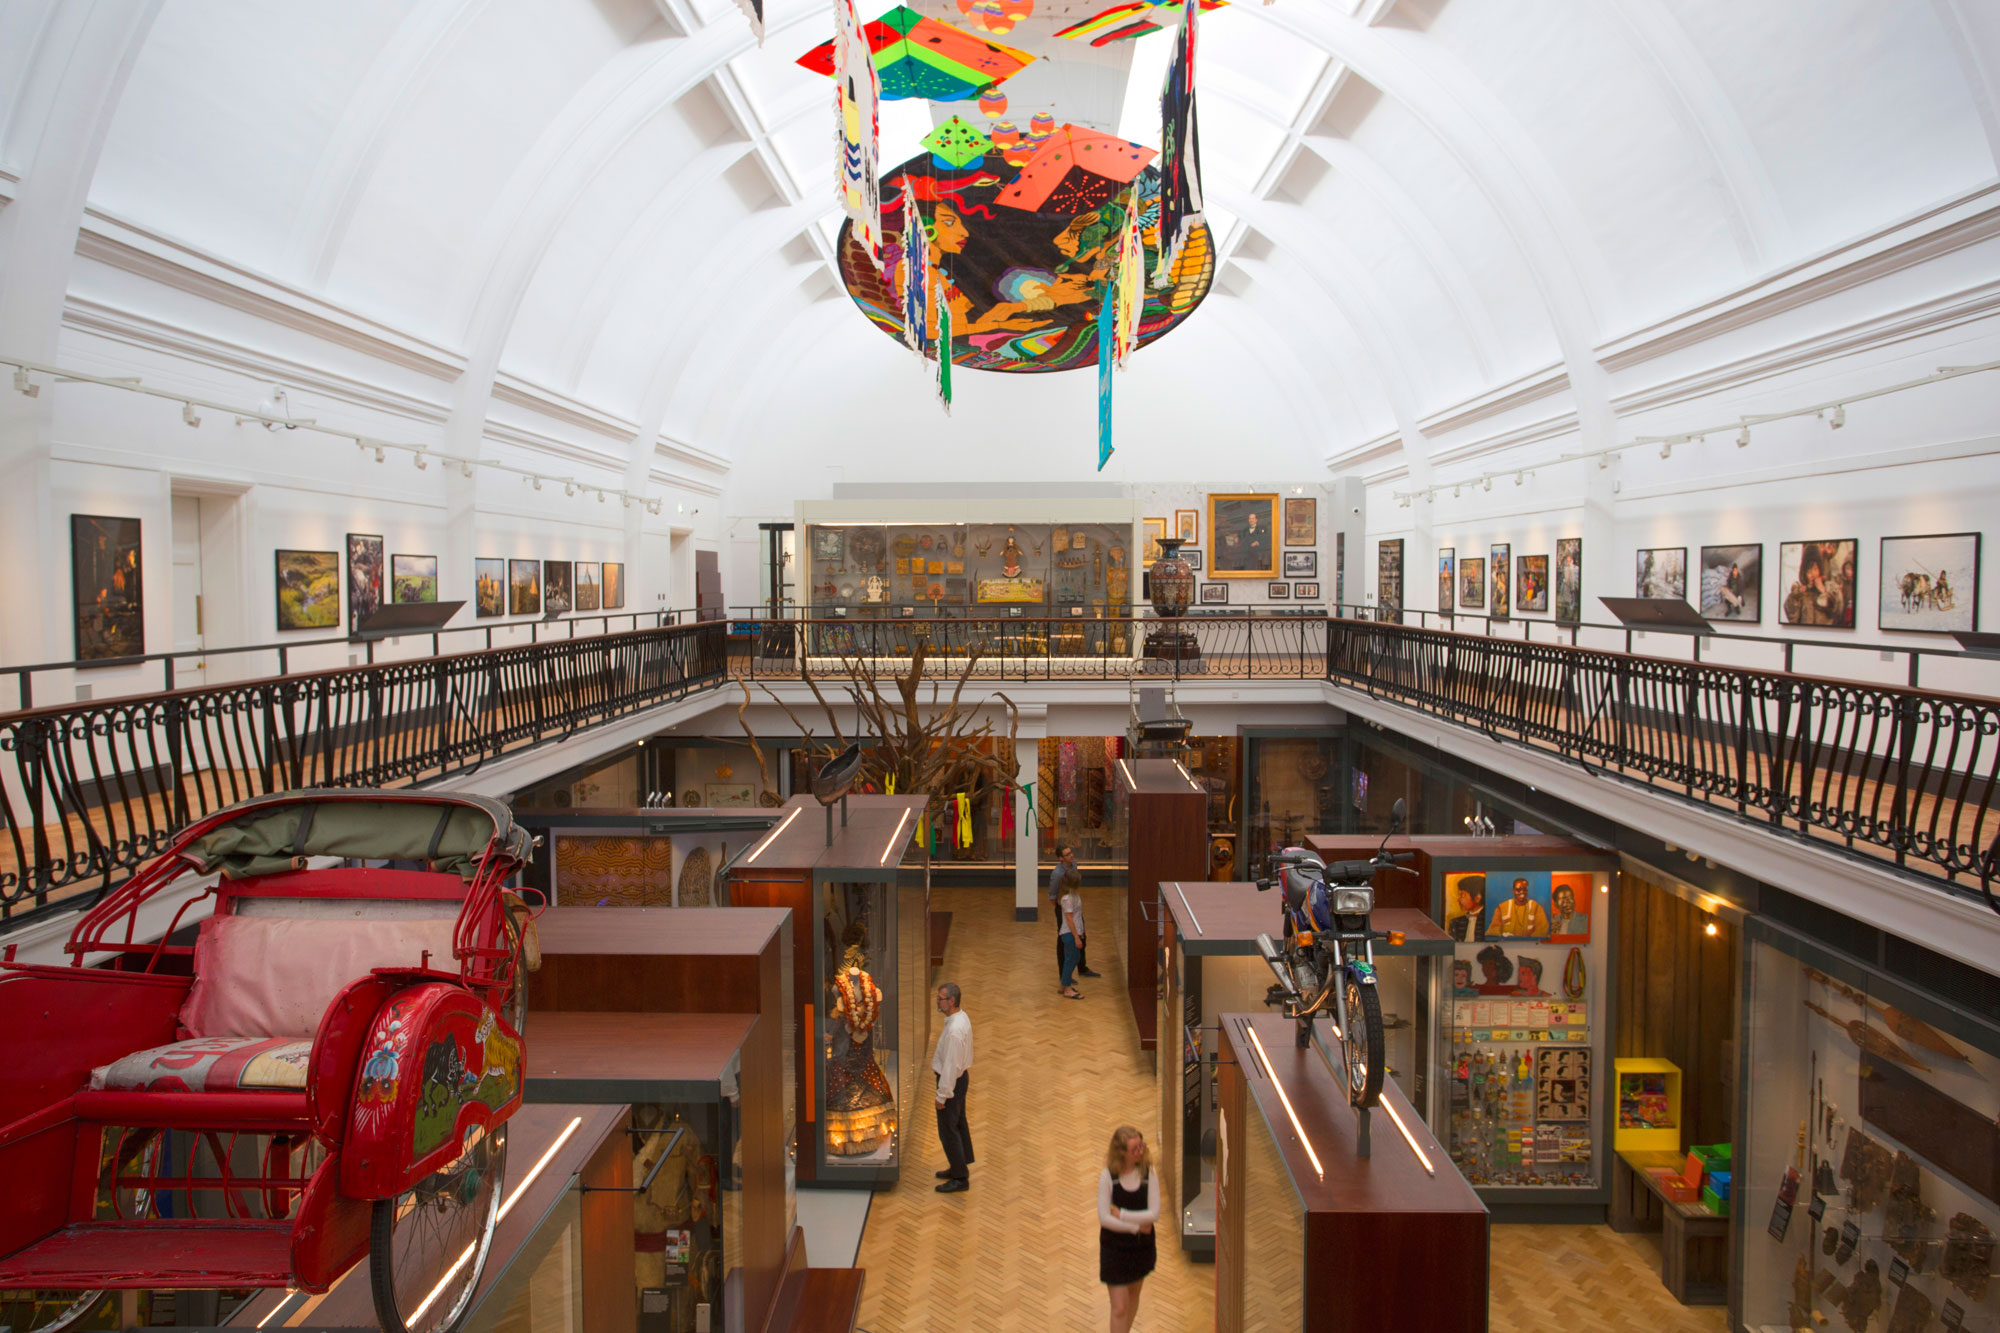 An aerial photograph of a gallery with a few people wondering through it below. There are cases full of objects and some large objects on the tops of cases, like a motorbike and a sled. There is a white domed ceiling and kites on the ceiling are visible.